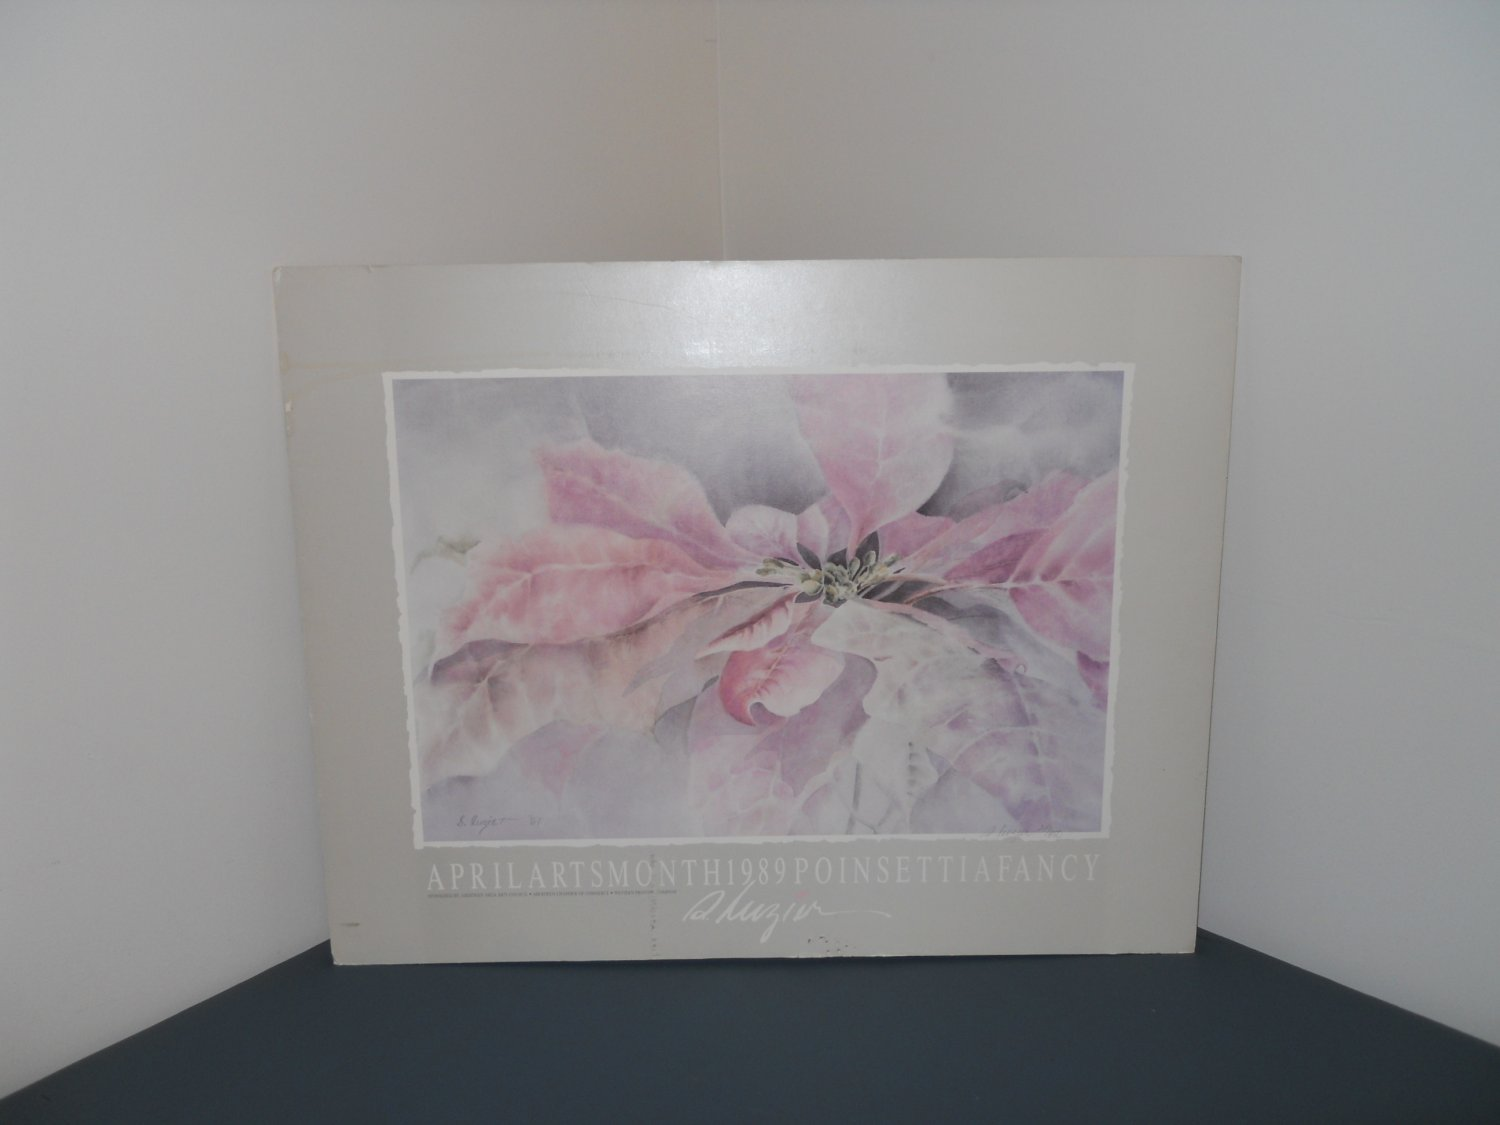 poinsettia art print water-color by S. Luzier - limited print 24/450 autographed - OOP